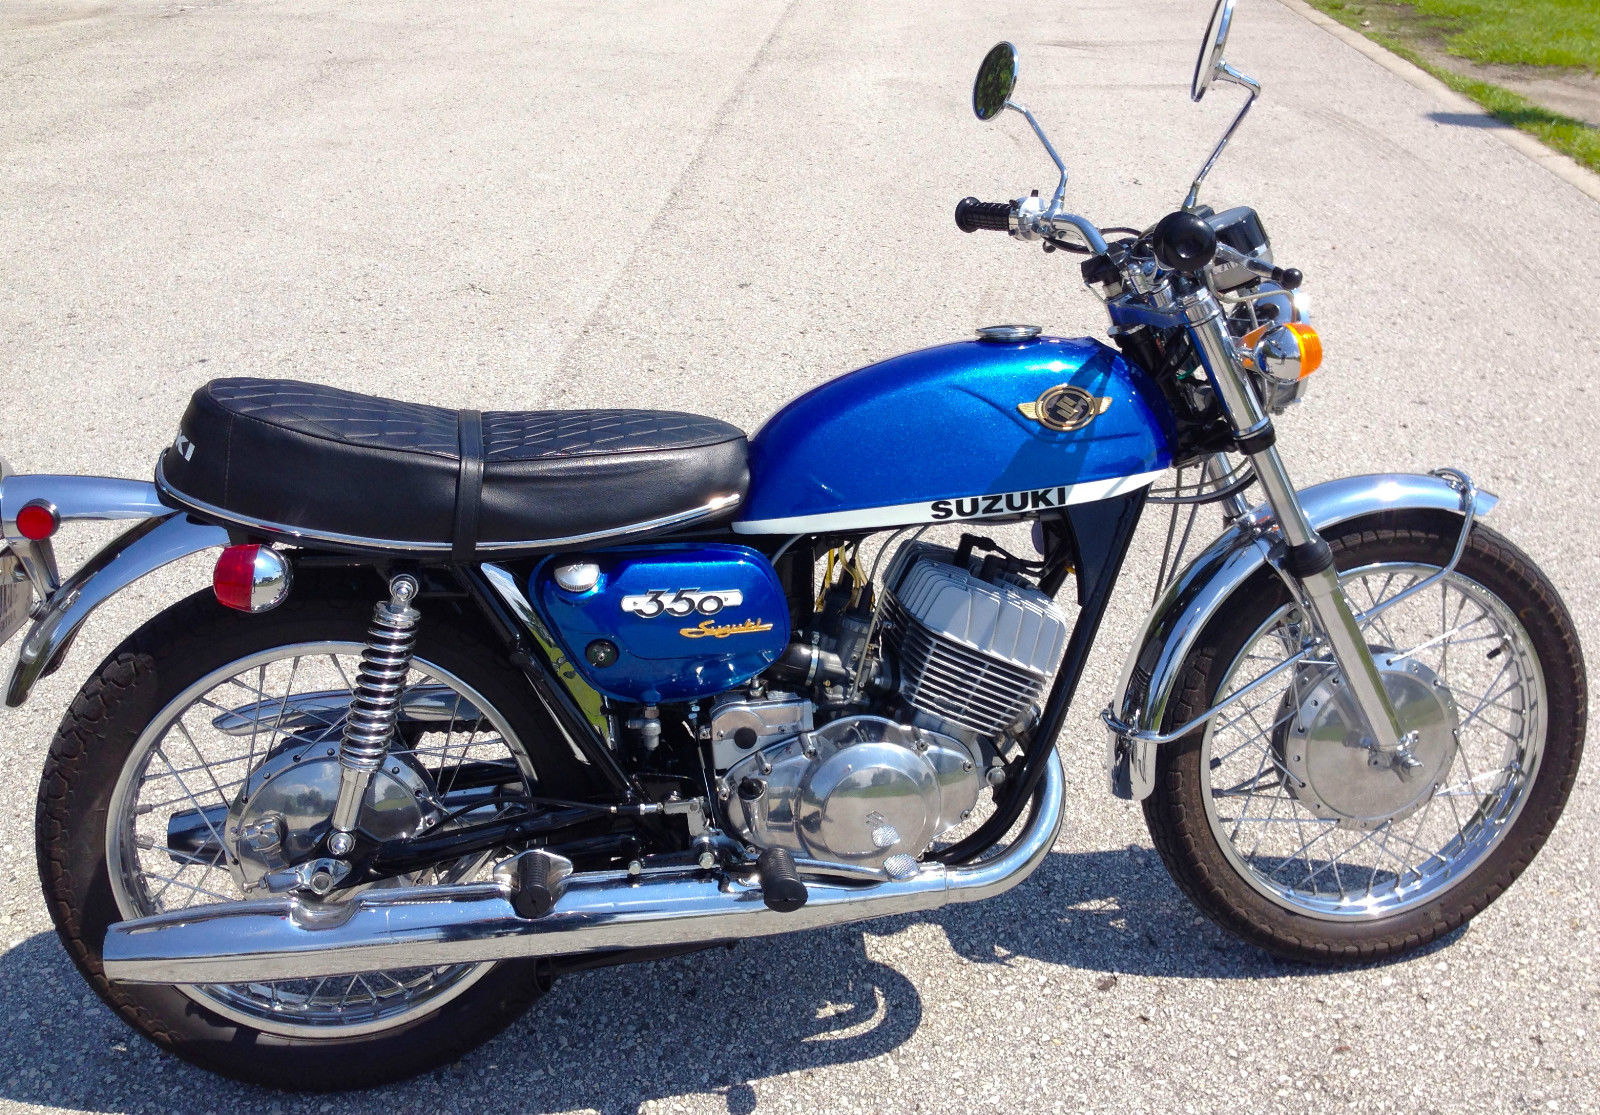 Restored Suzuki T350 - 1970 Photographs at Clic Bikes Restored ...